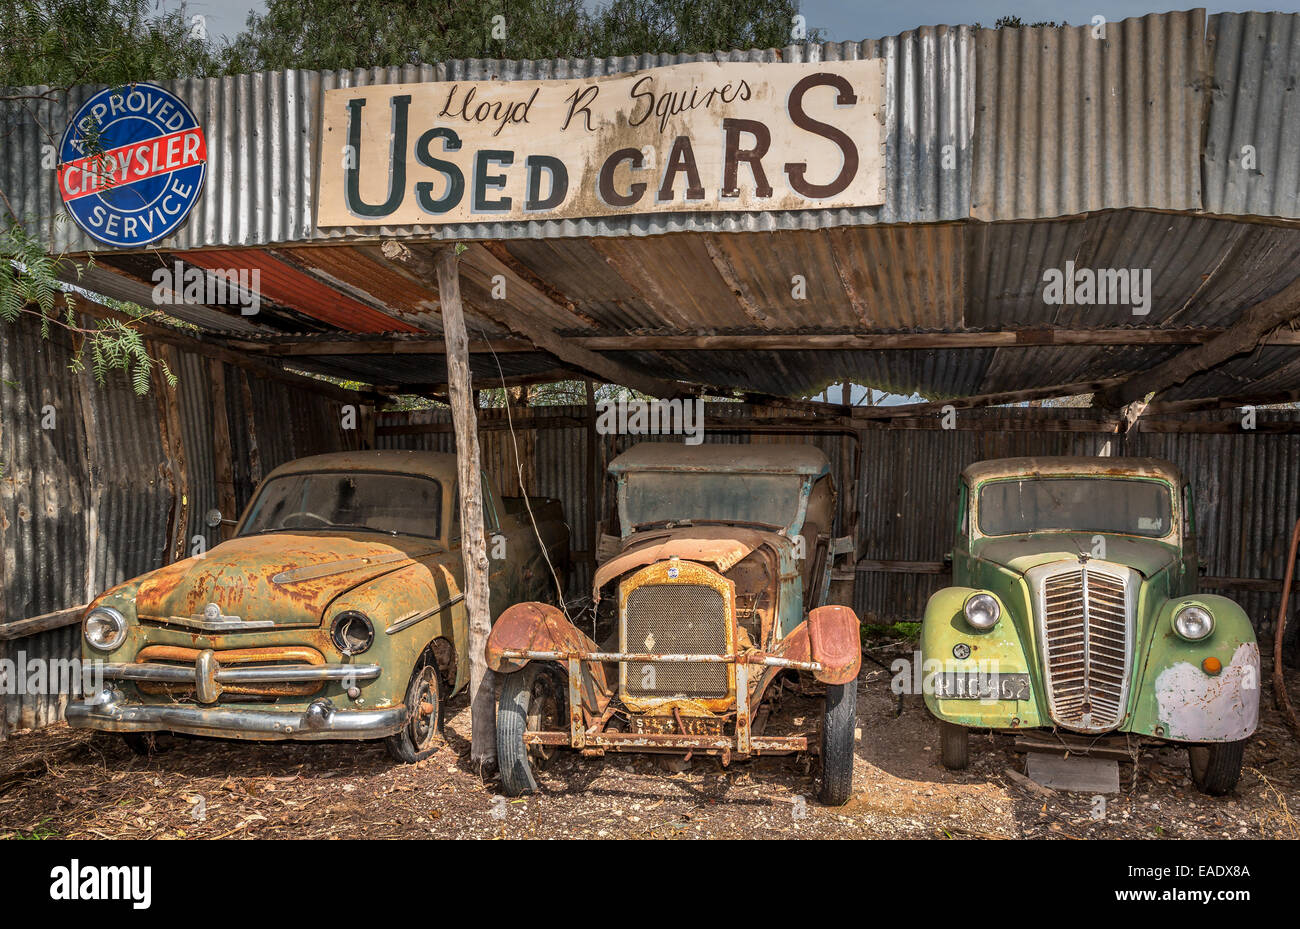 Used Cars Stock Photos & Used Cars Stock Images - Alamy